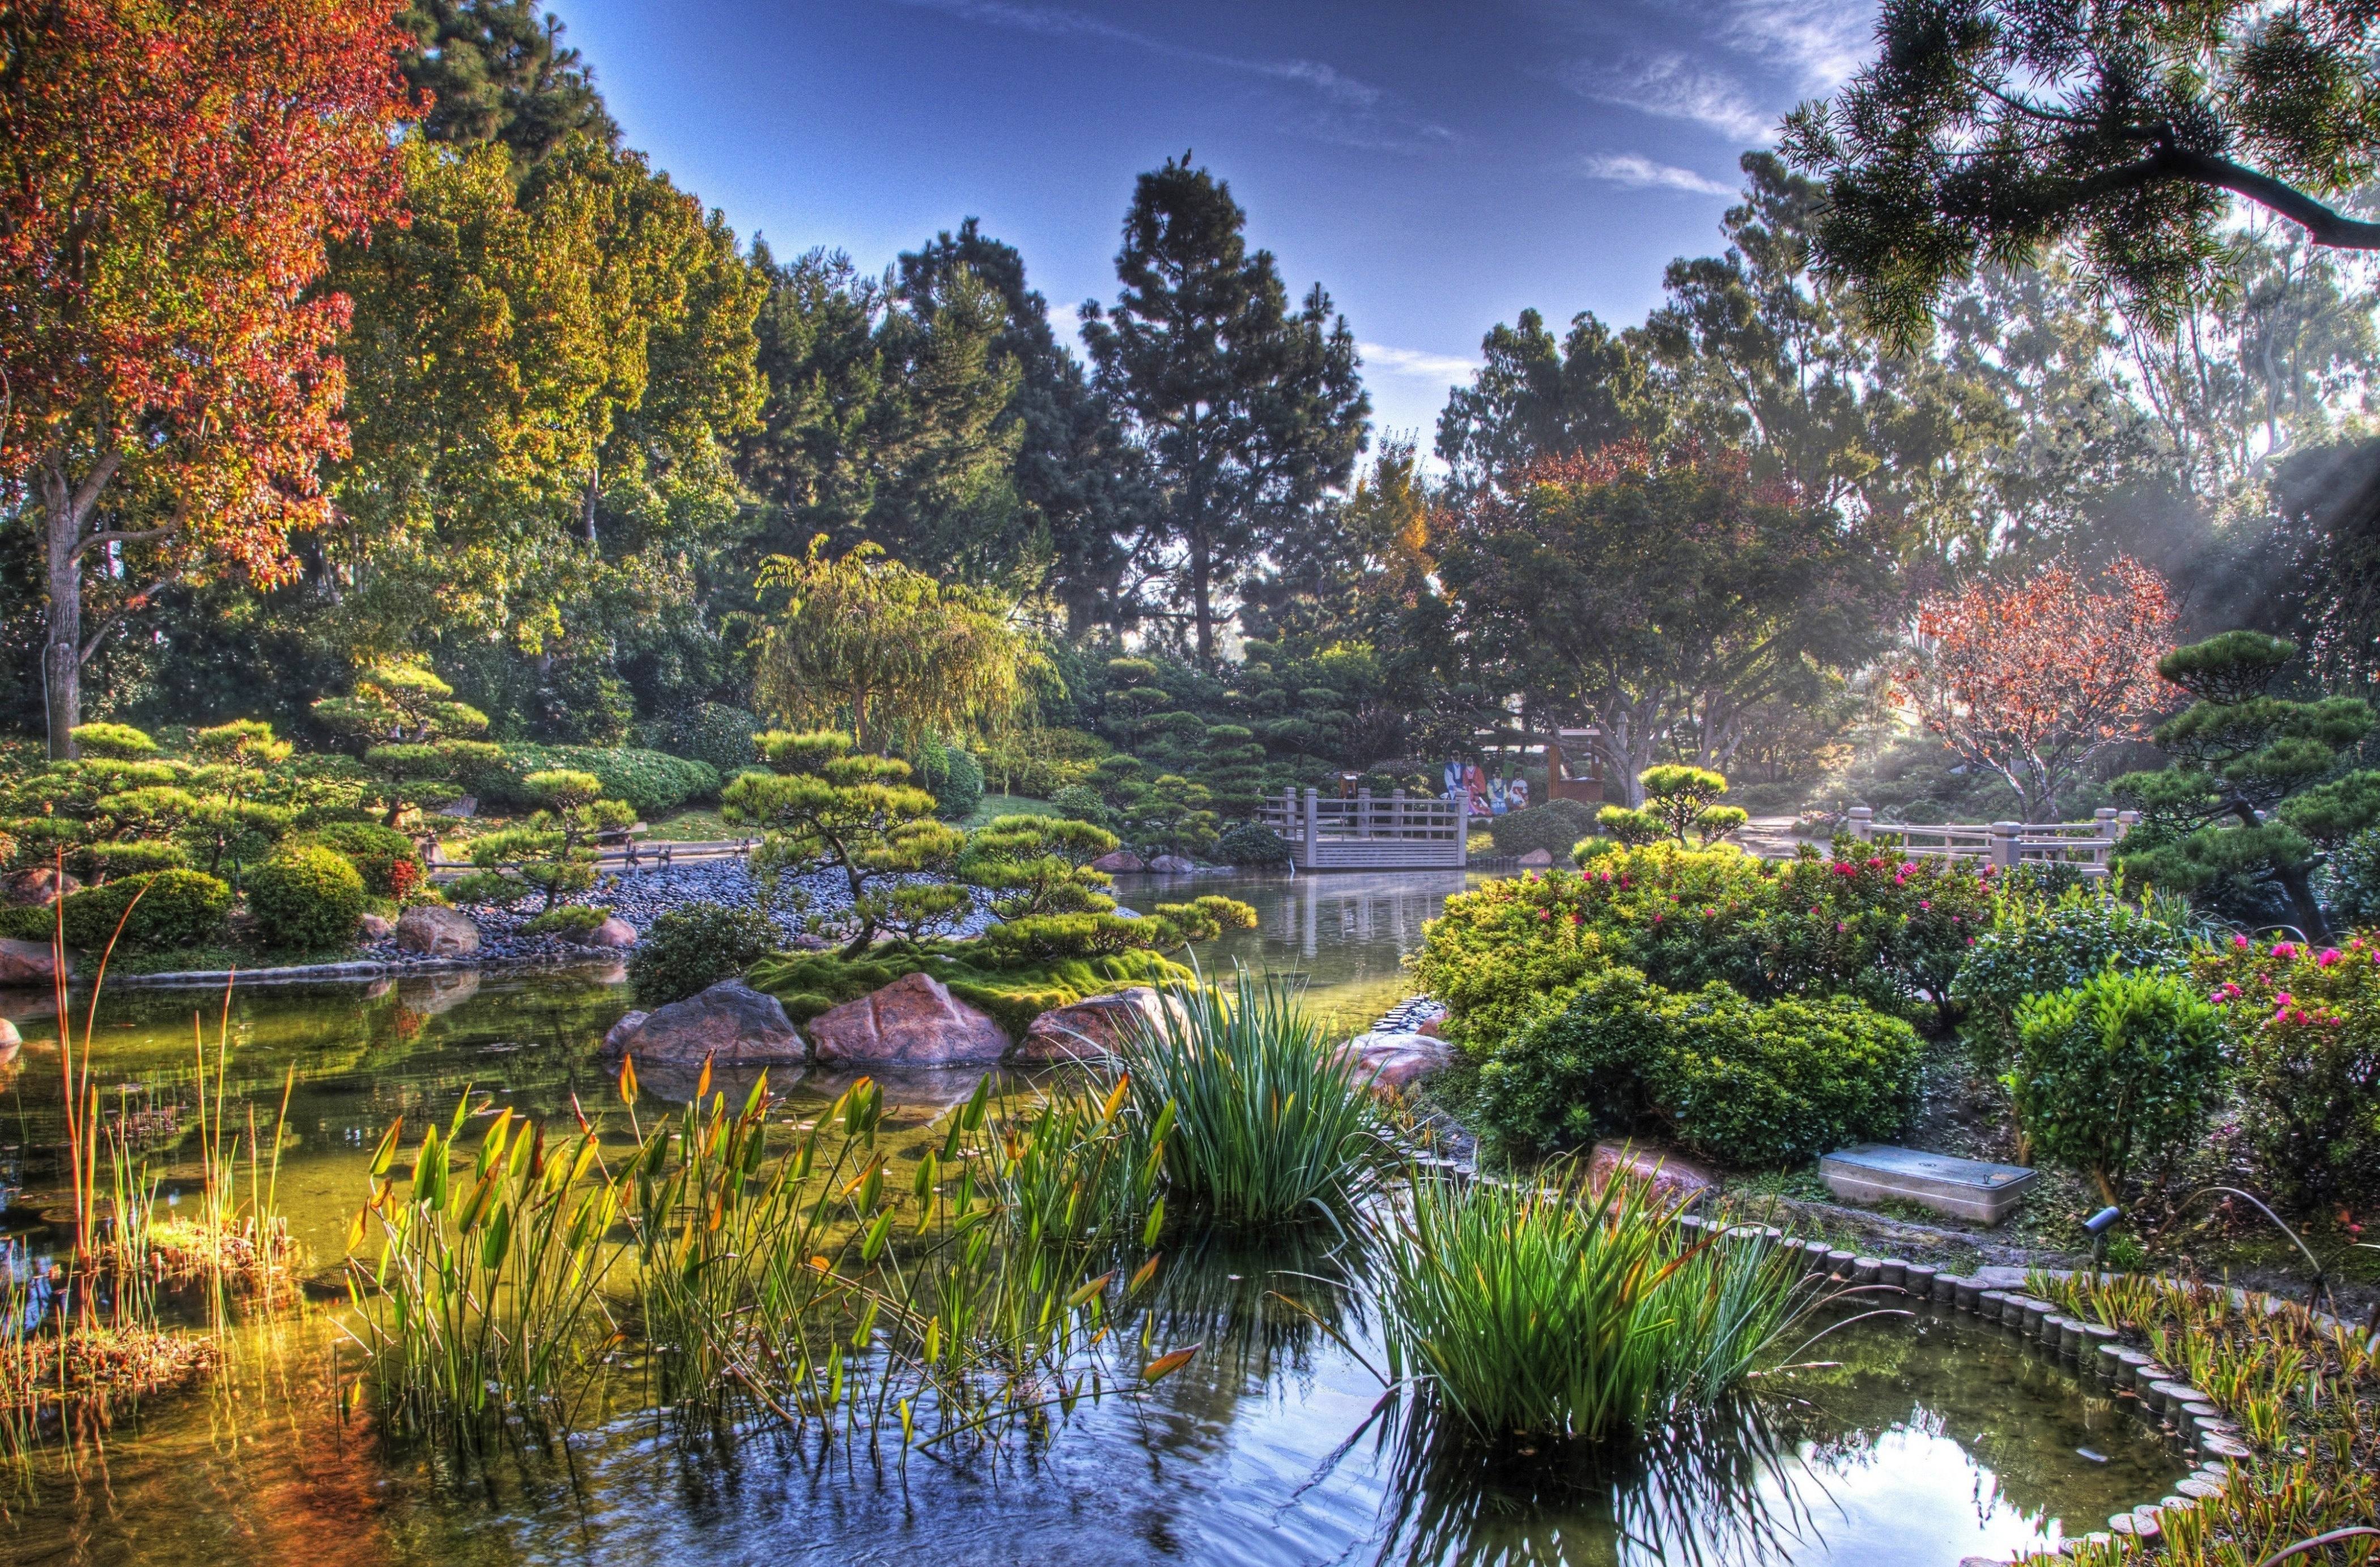 30 japanese garden hd wallpapers | background images - wallpaper abyss